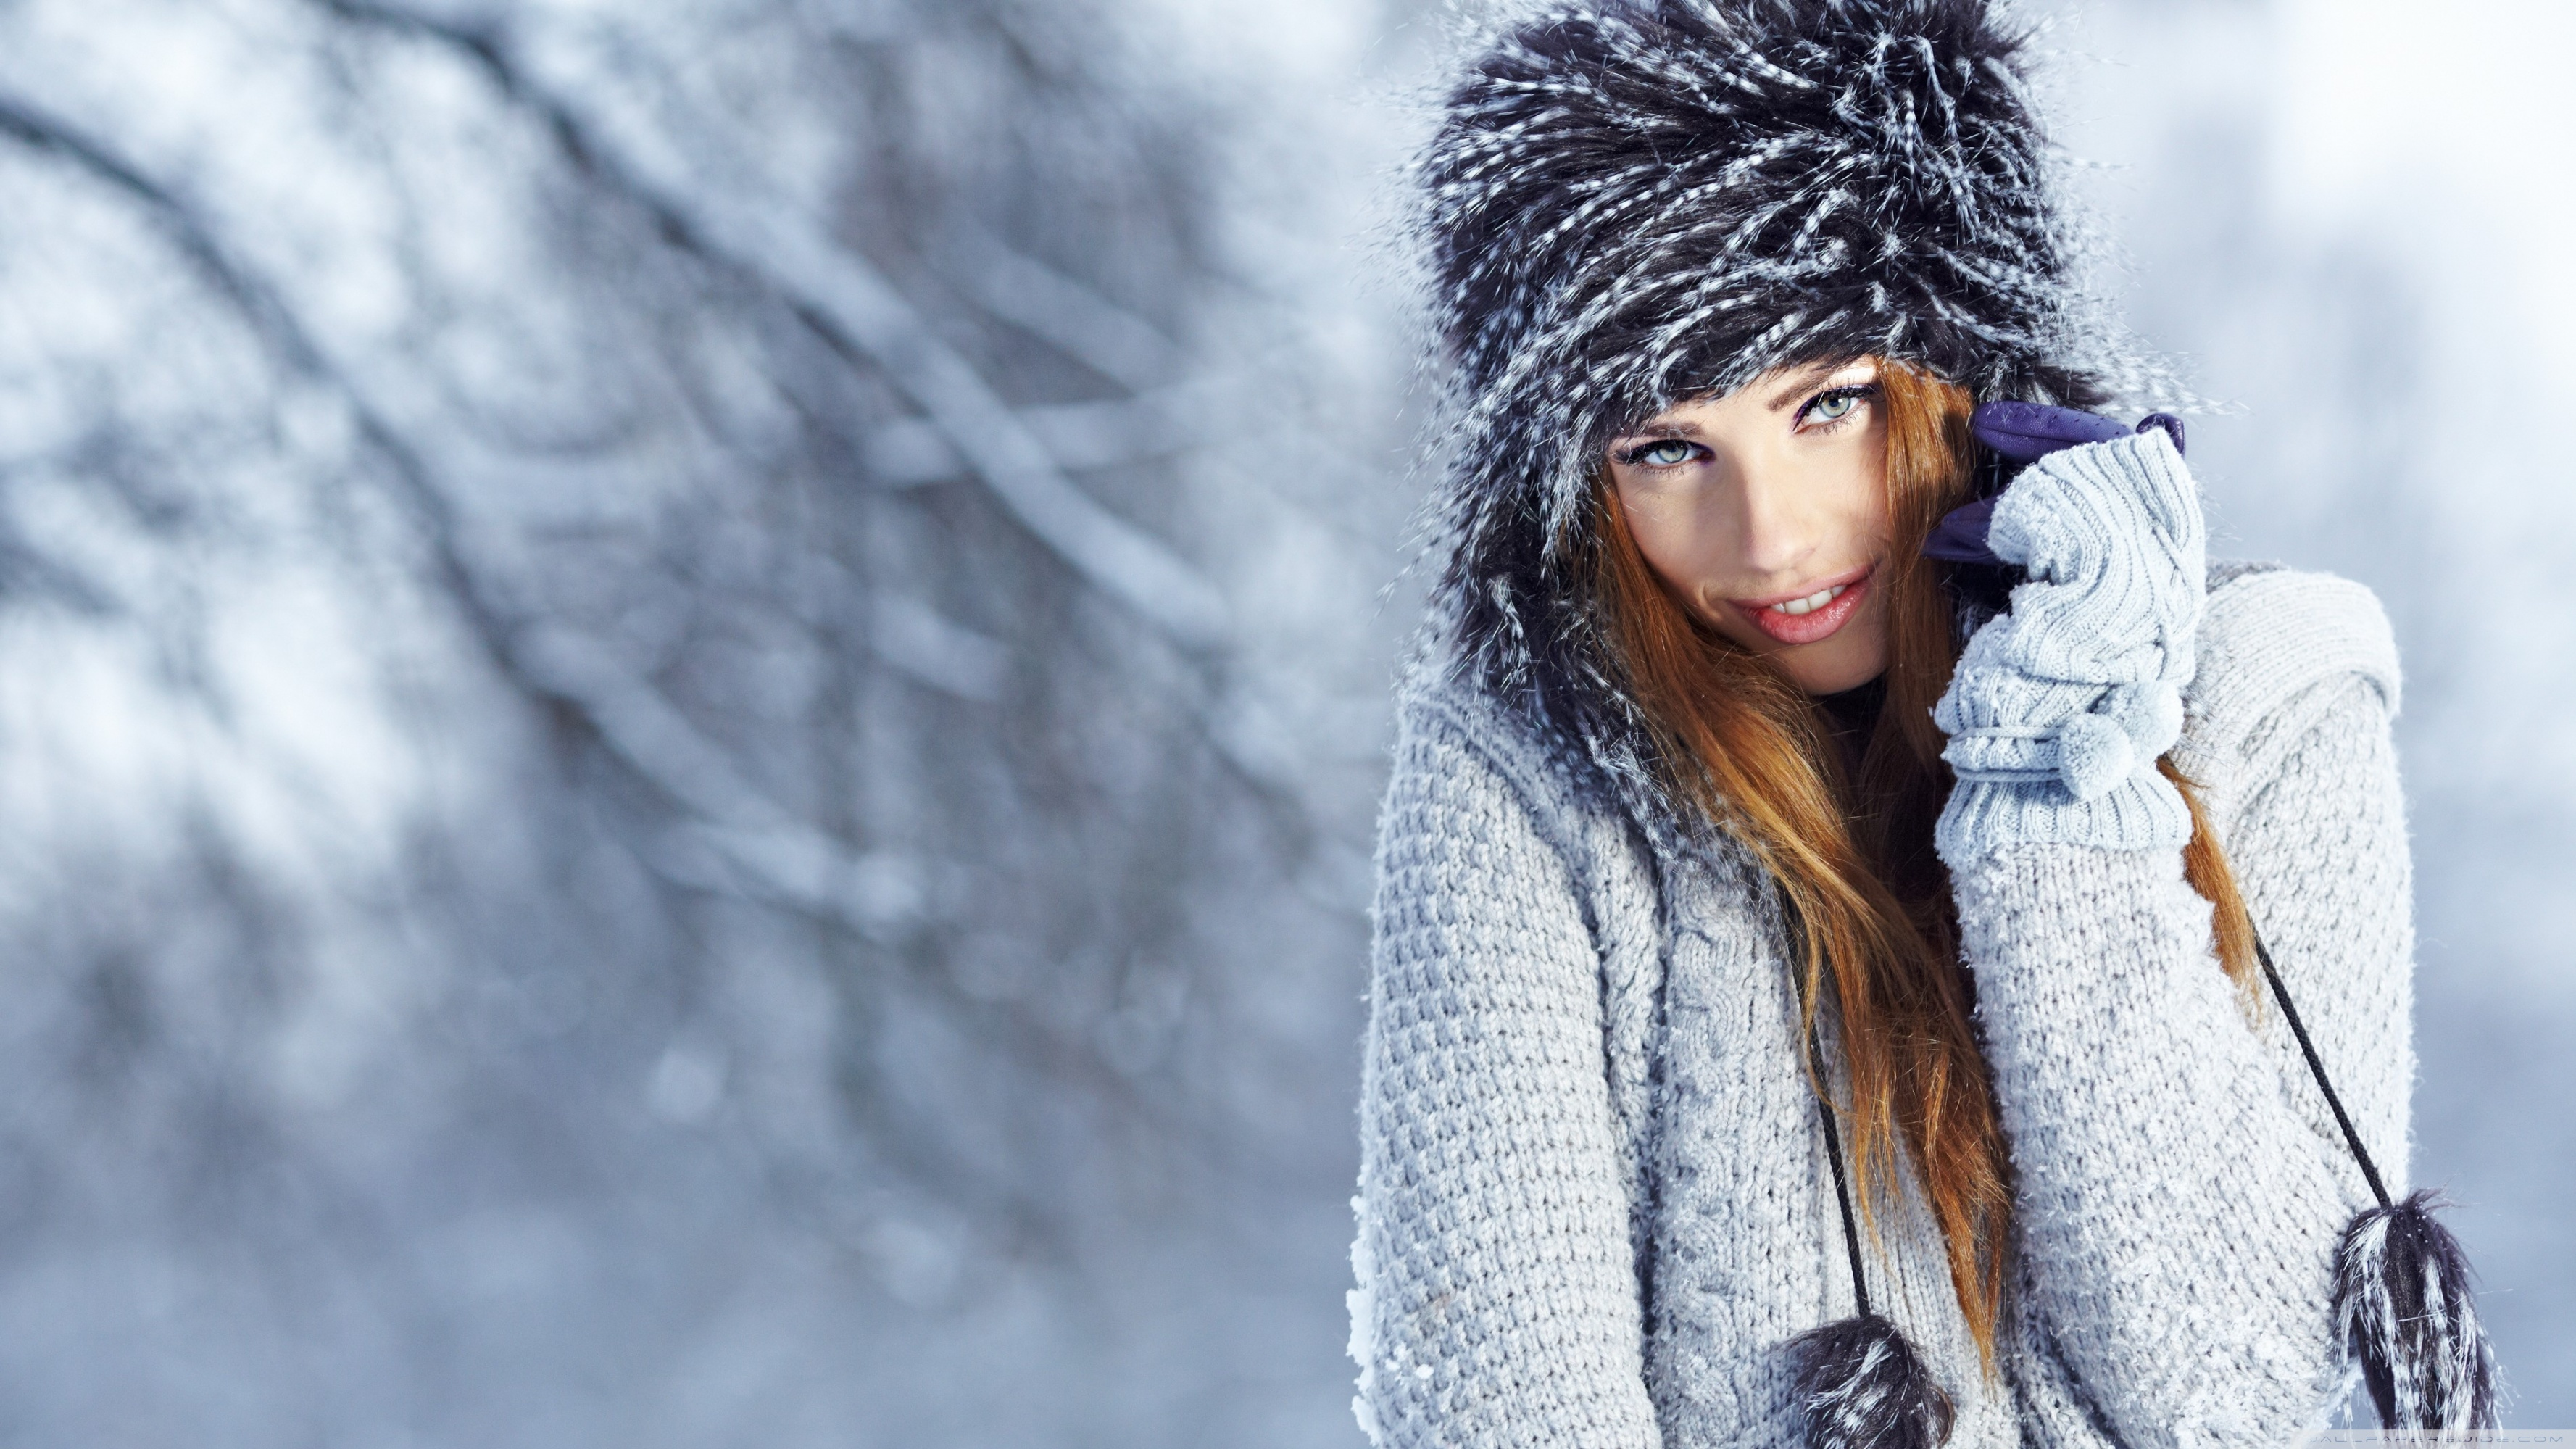 Related Wallpapers - Beautiful Images Of Winter Season , HD Wallpaper & Backgrounds